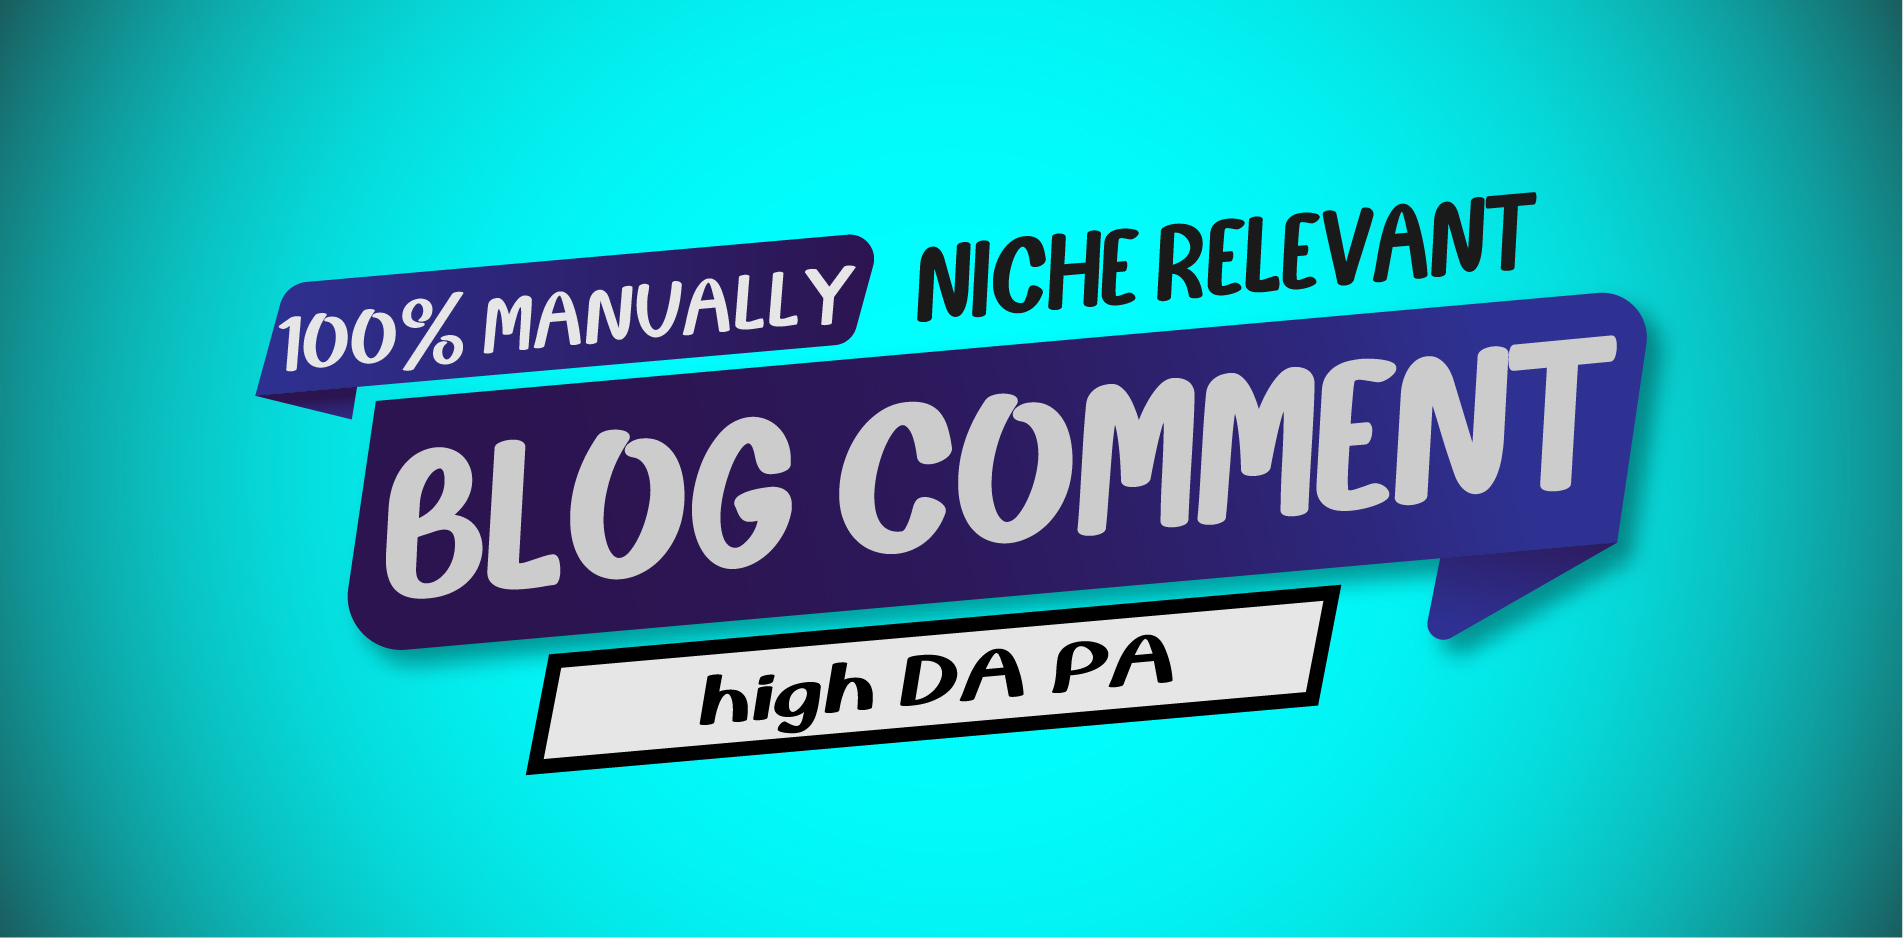 50 niche relevant blog comment create manually